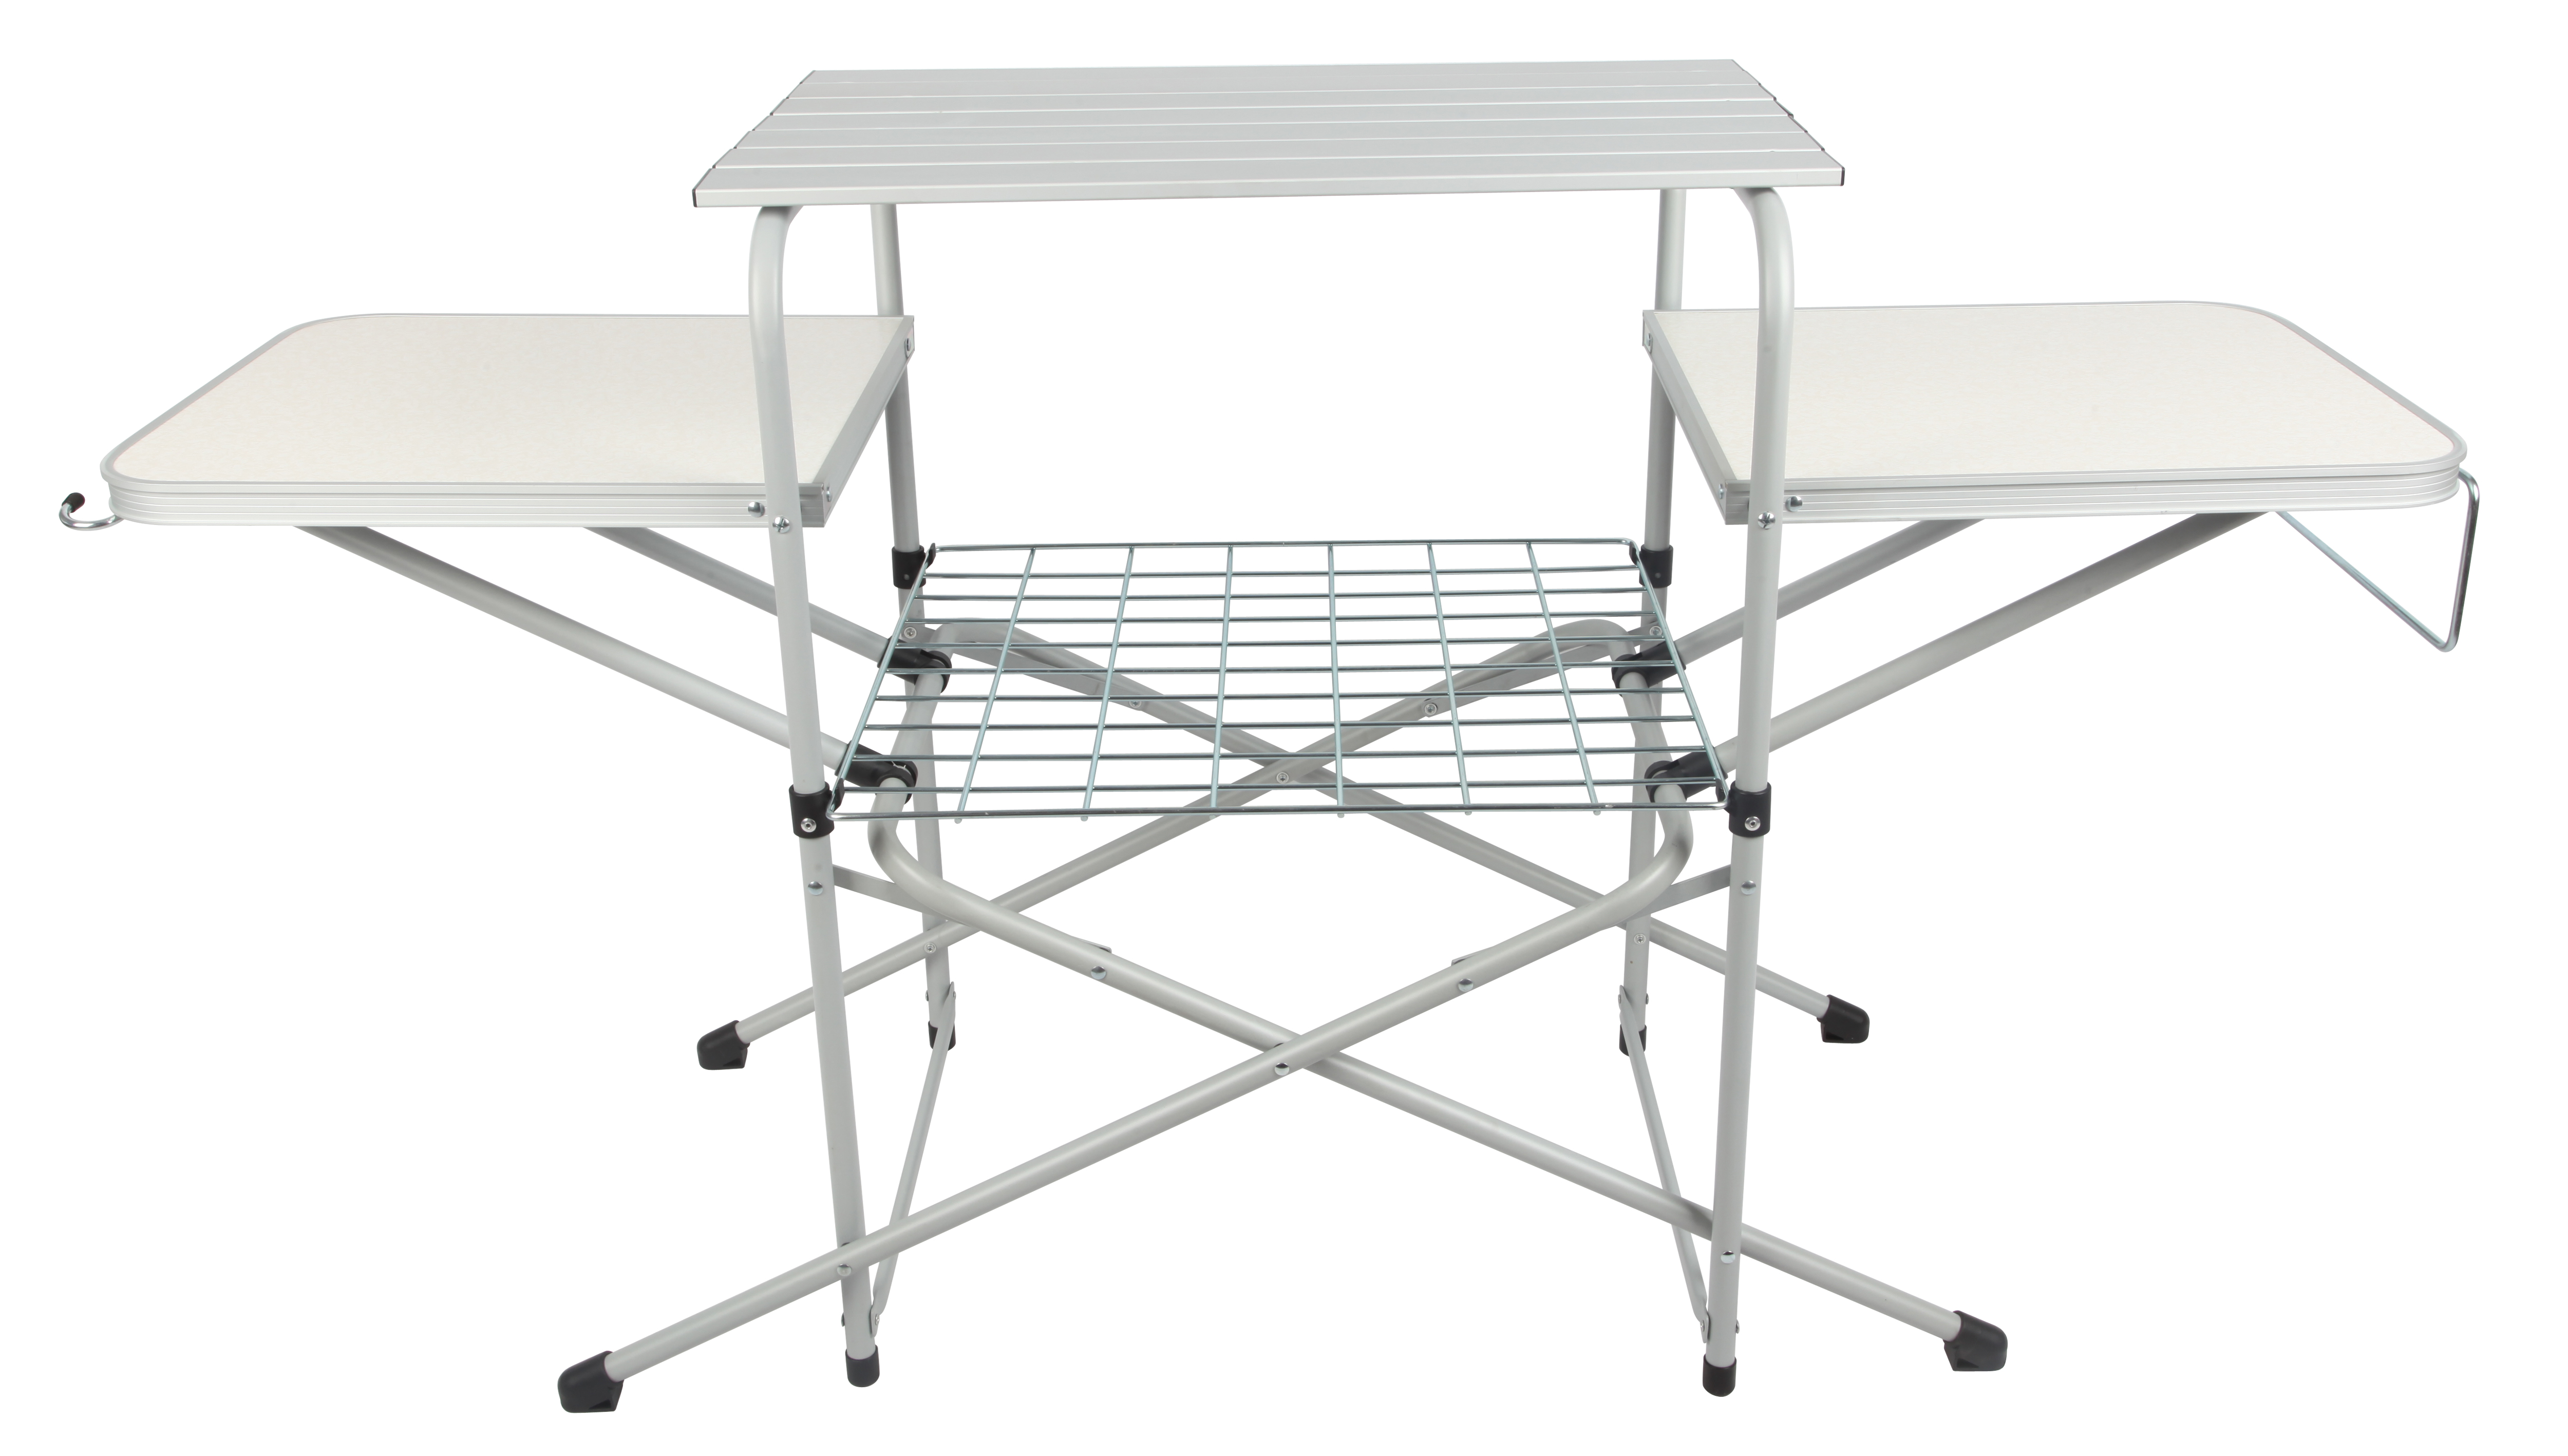 Brilliant Ozark Trail Camp Kitchen Cooking Stand With Three Table Tops Lamtechconsult Wood Chair Design Ideas Lamtechconsultcom